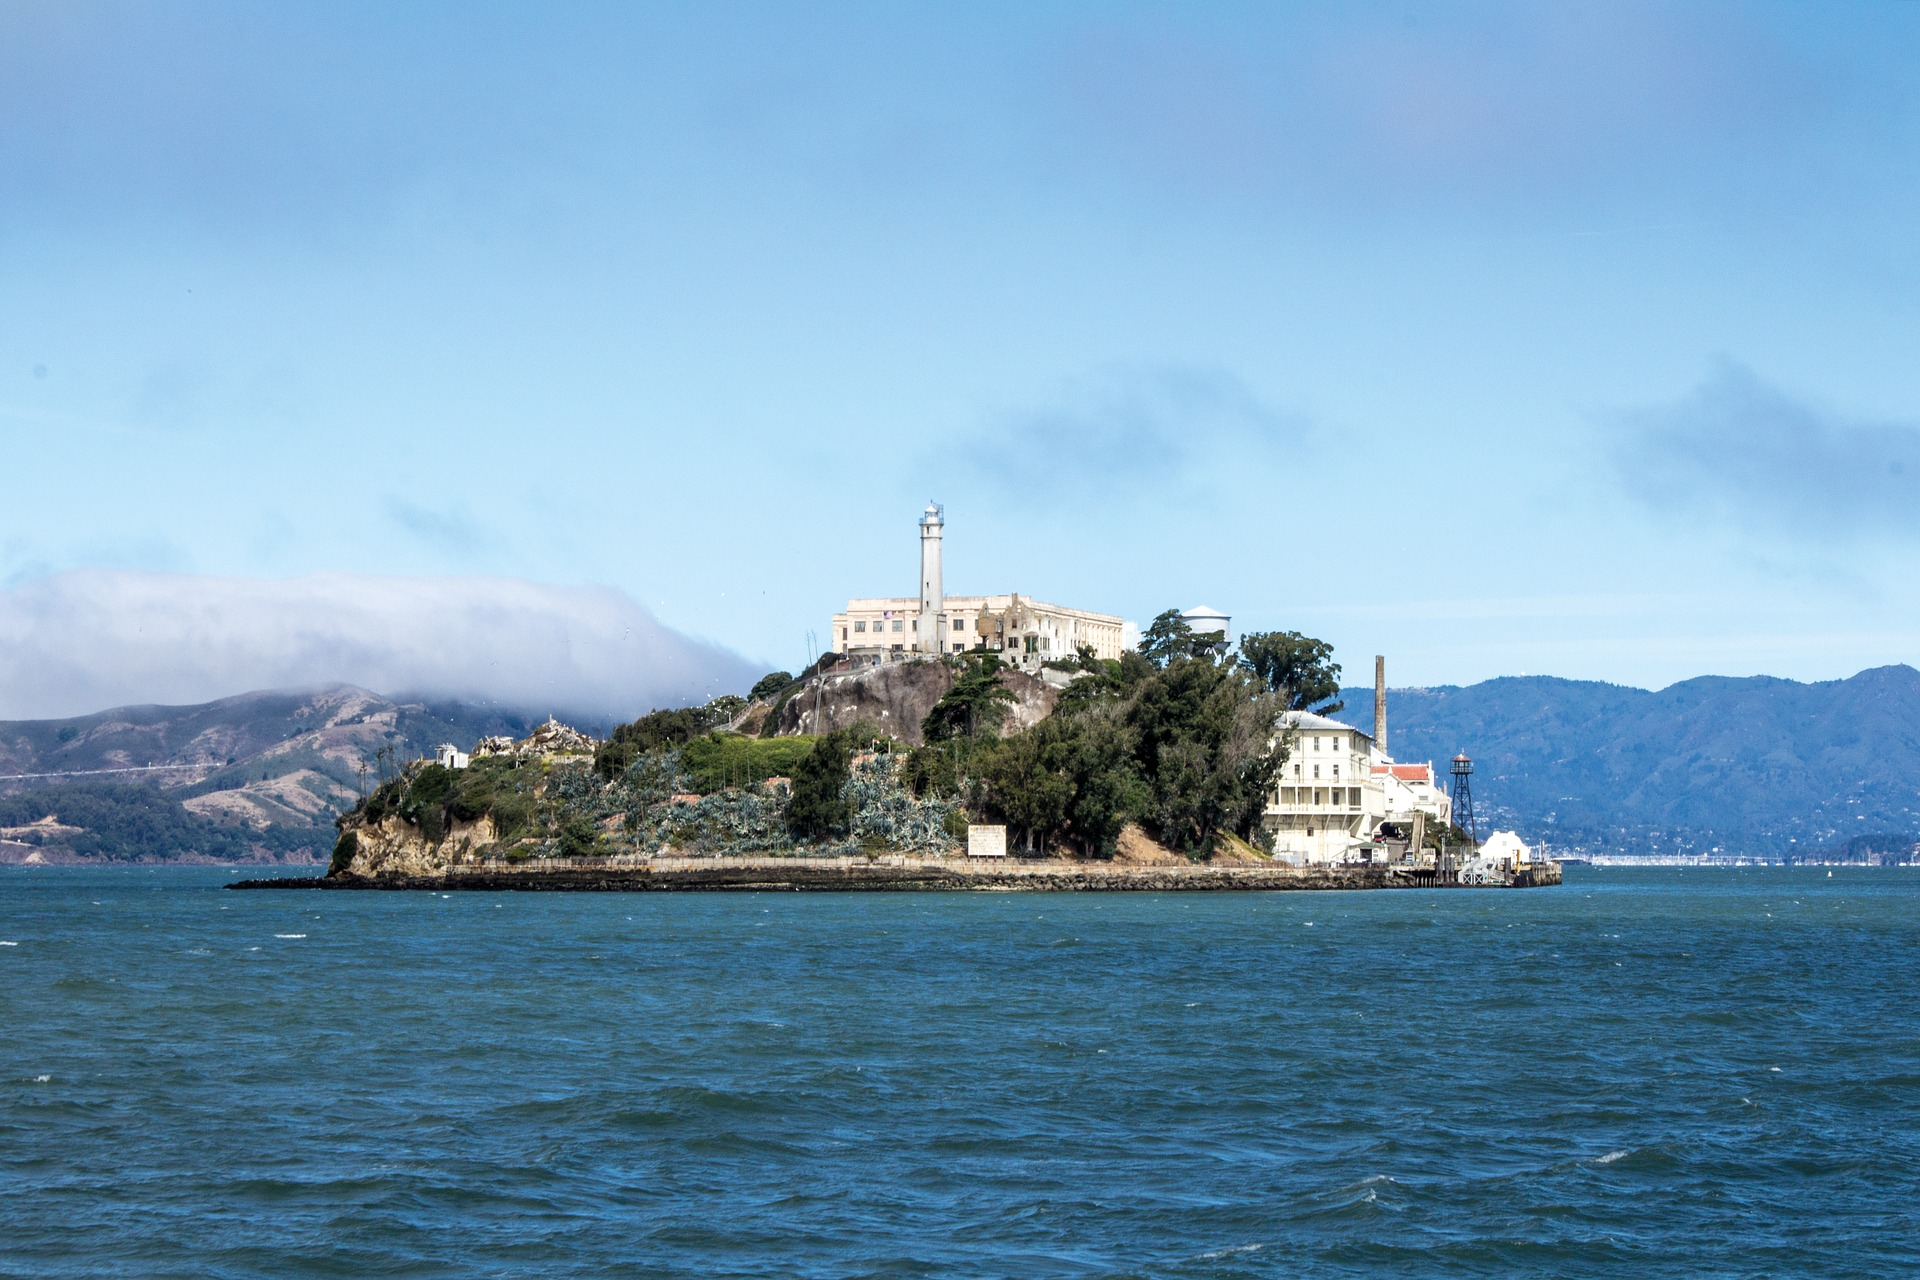 The island of Alcatraz from San Fransisco waters.